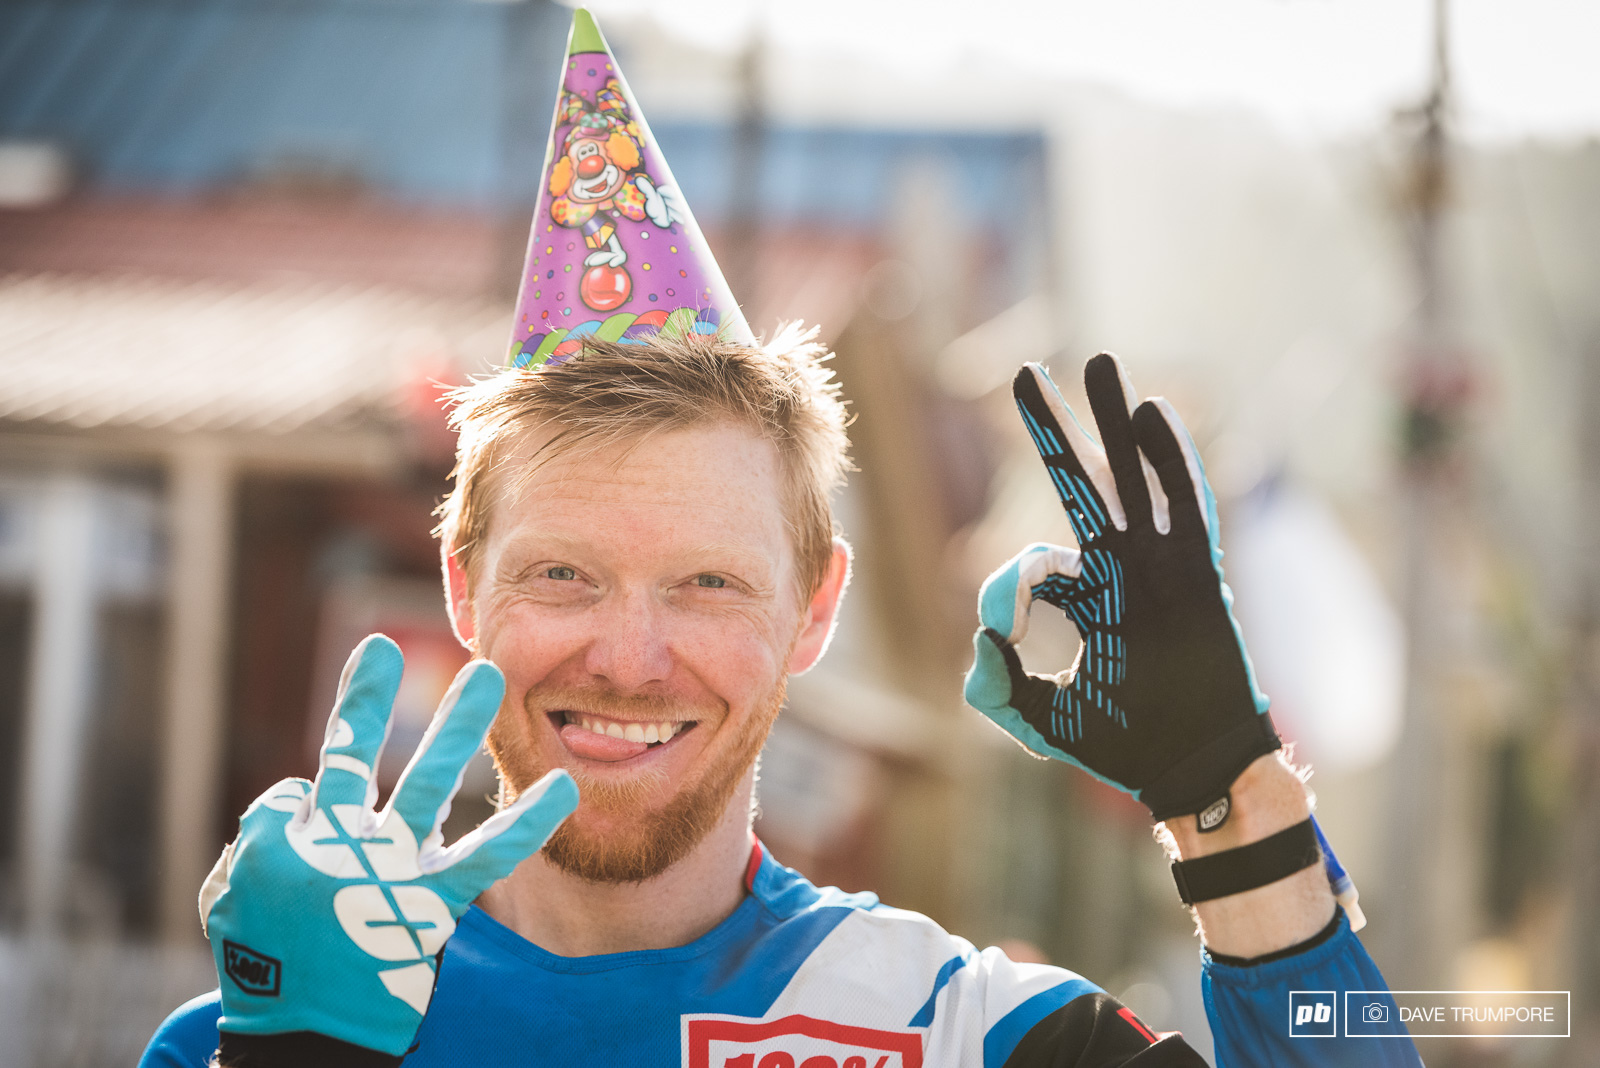 10th place and a Happy 30th Birthday for Josh Carlson.